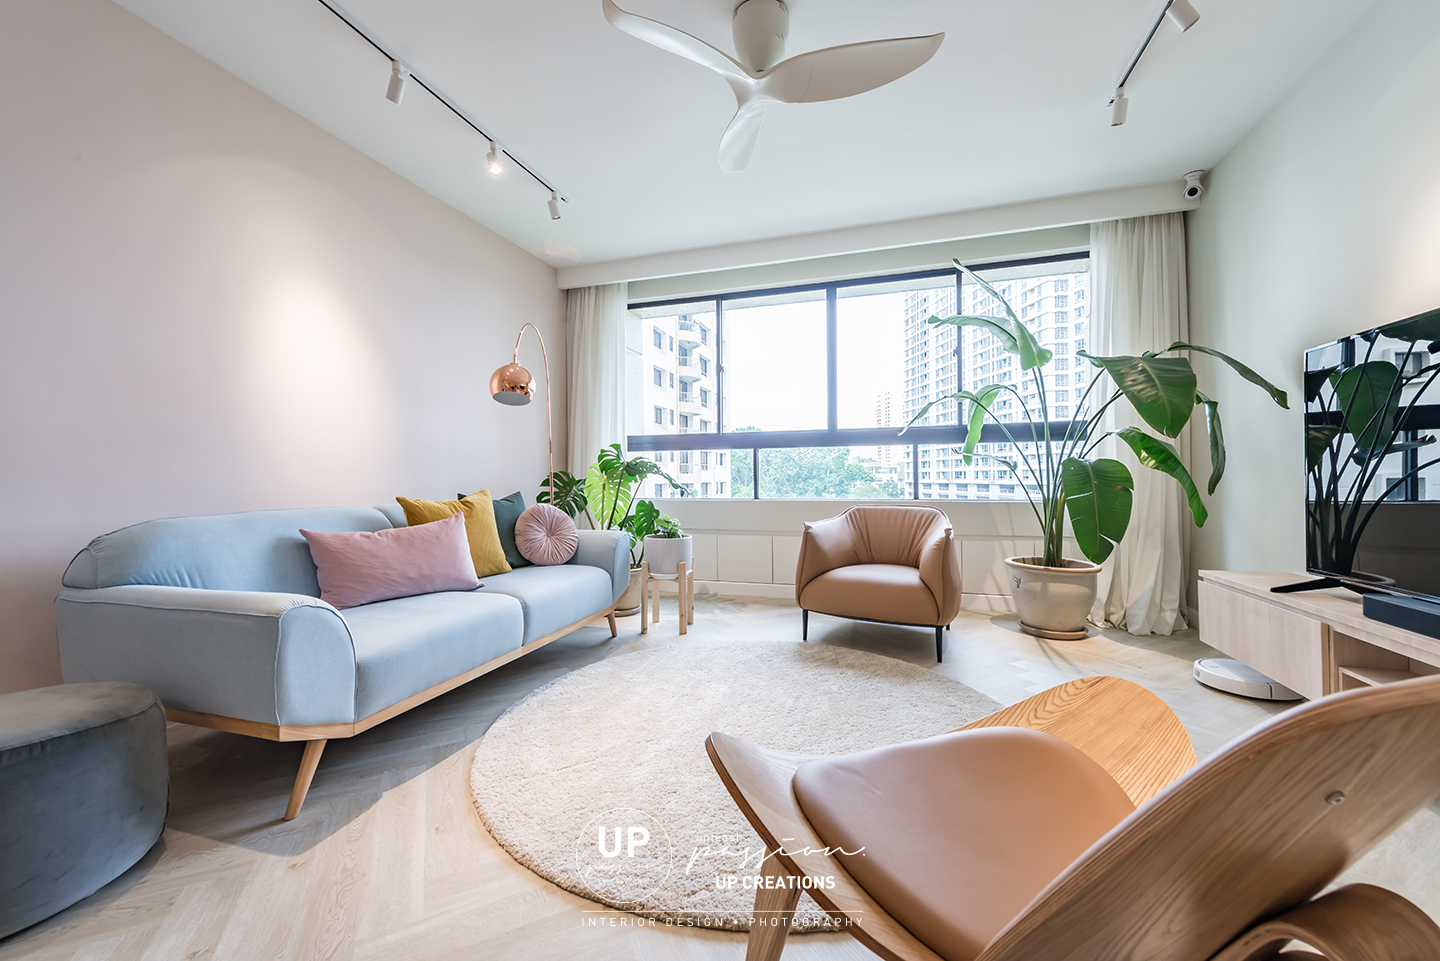 Mont Kiara Pines condo highlighted wall in pastel pink color in the living area match with pastel blue color sofa and genuine leather armchair